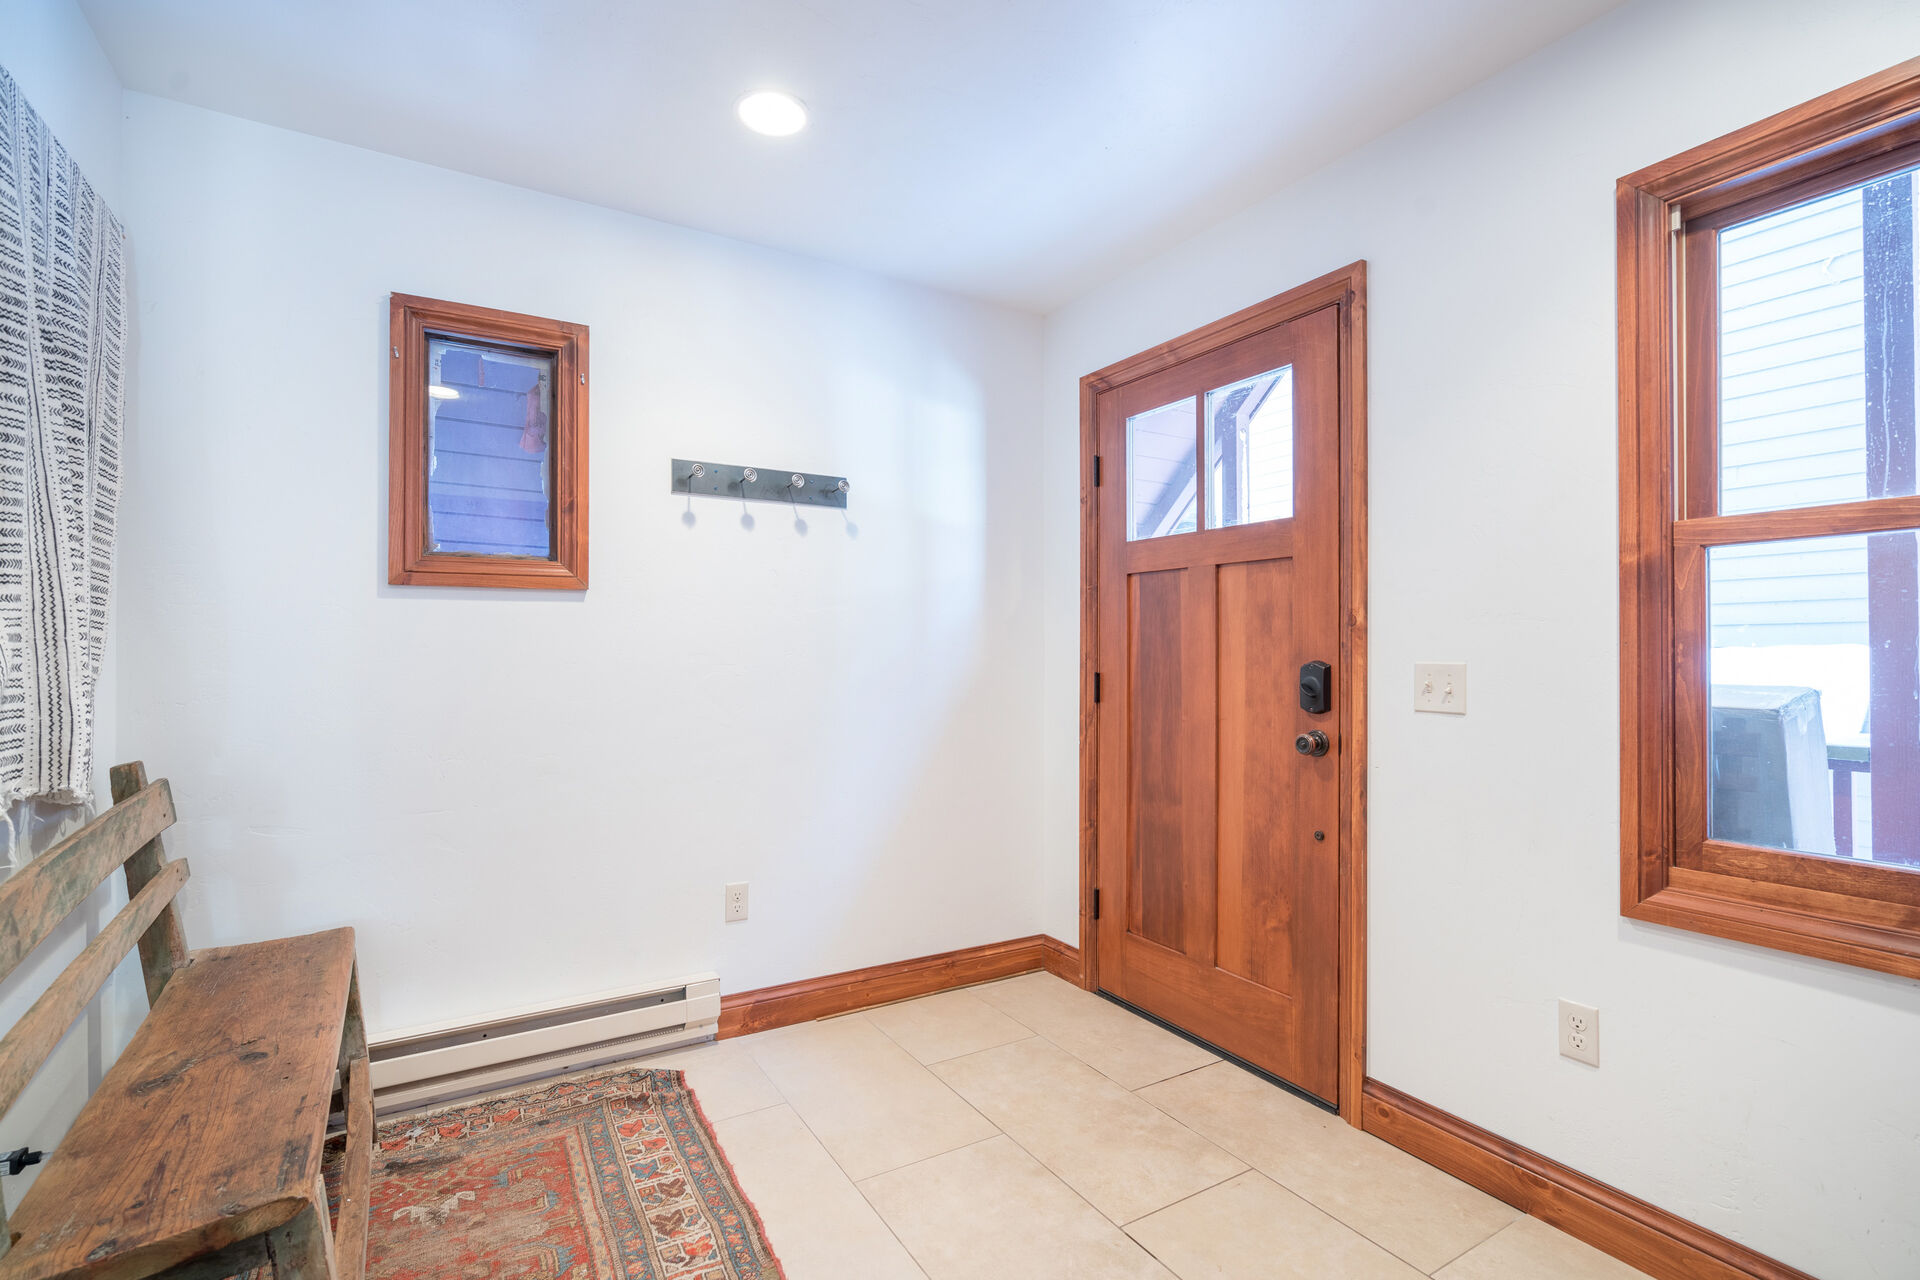 Spacious Foyer with a Bench